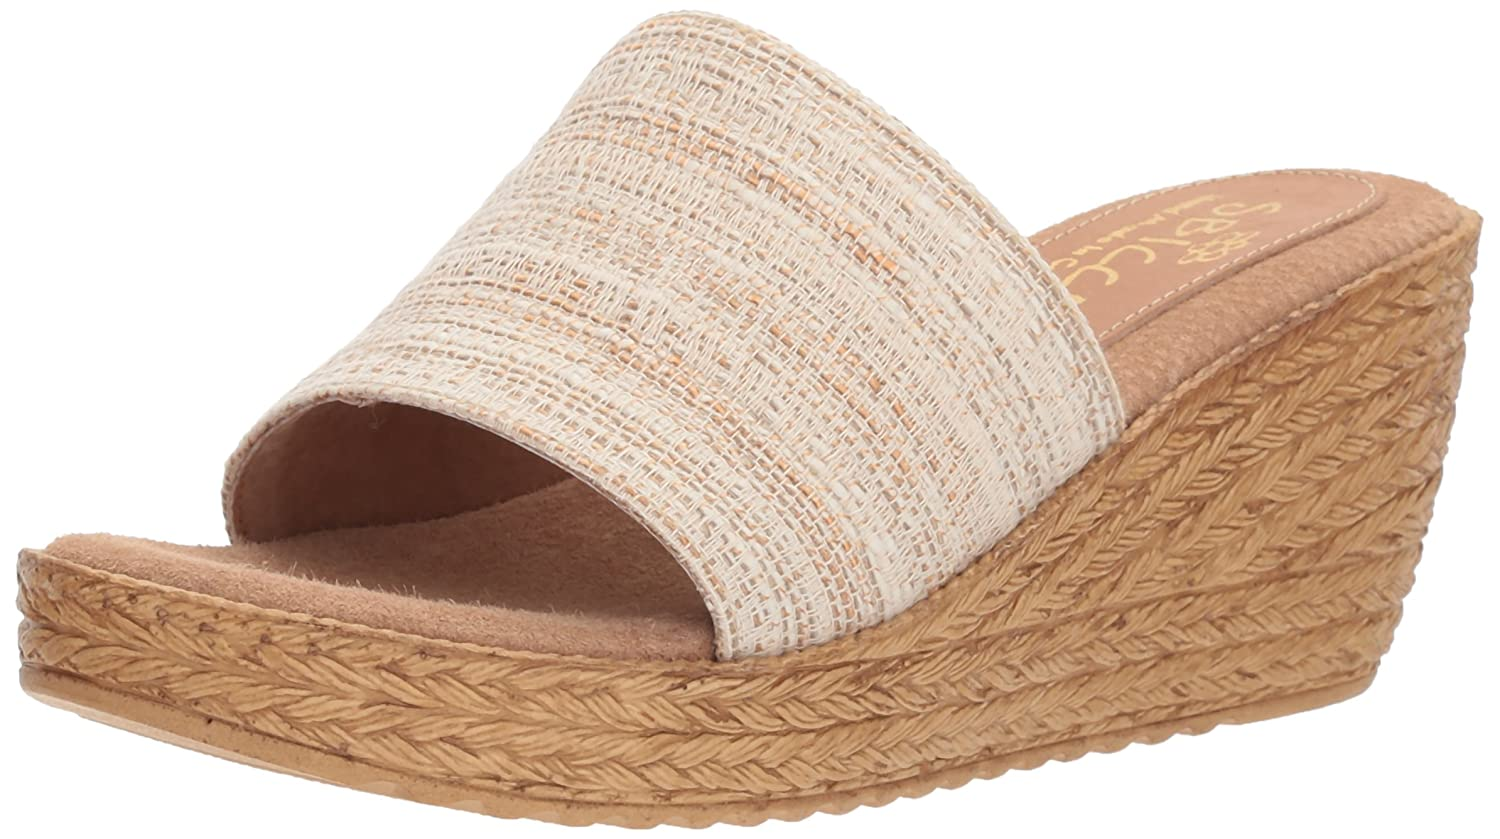 Sbicca Women's Fairy Slide Sandal B0765RJMZF 6 B(M) US|Natural